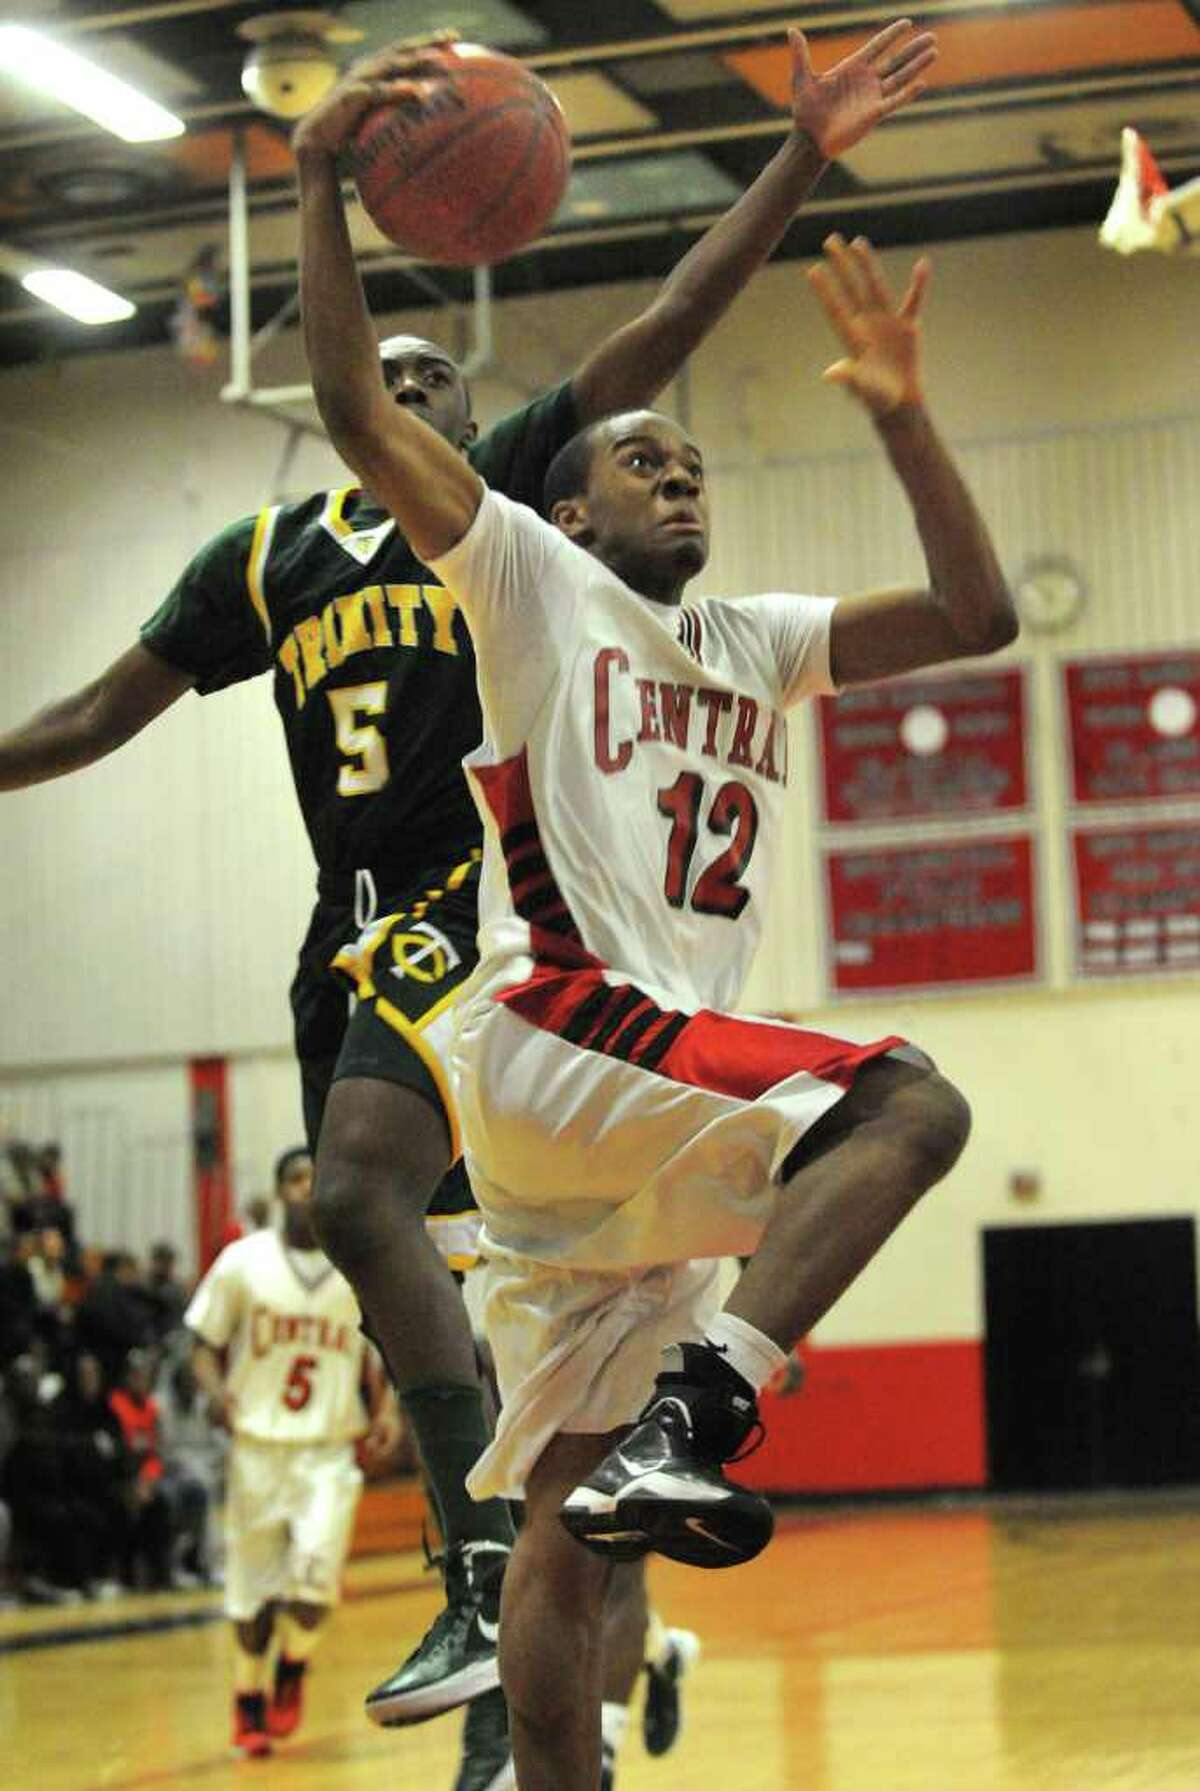 Trinity Catholic's Brandon Wheeler, left, looks for the block as Central's Josh Wilkerson drives to the basket during their FCIAC matchup at Central High School in Bridgeport on Monday, February 20, 2012.